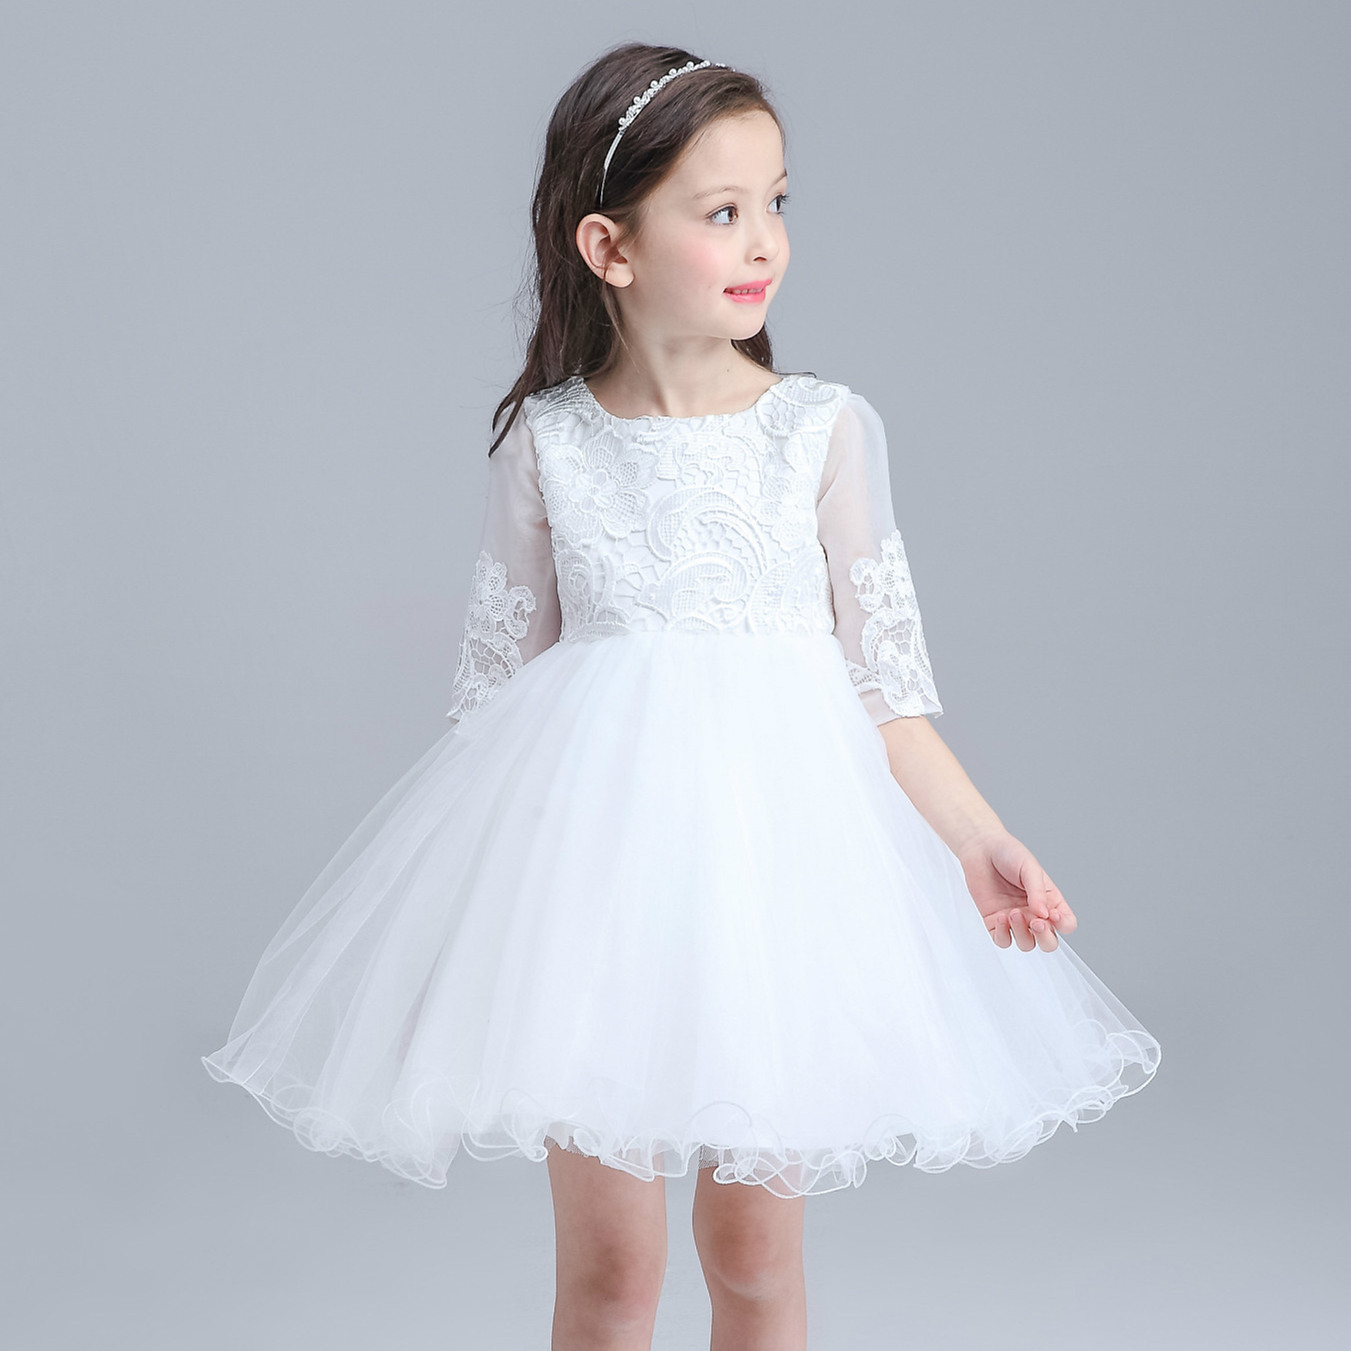 Luxury Baby Wedding Outfit Model - Womens Dresses & Gowns ...